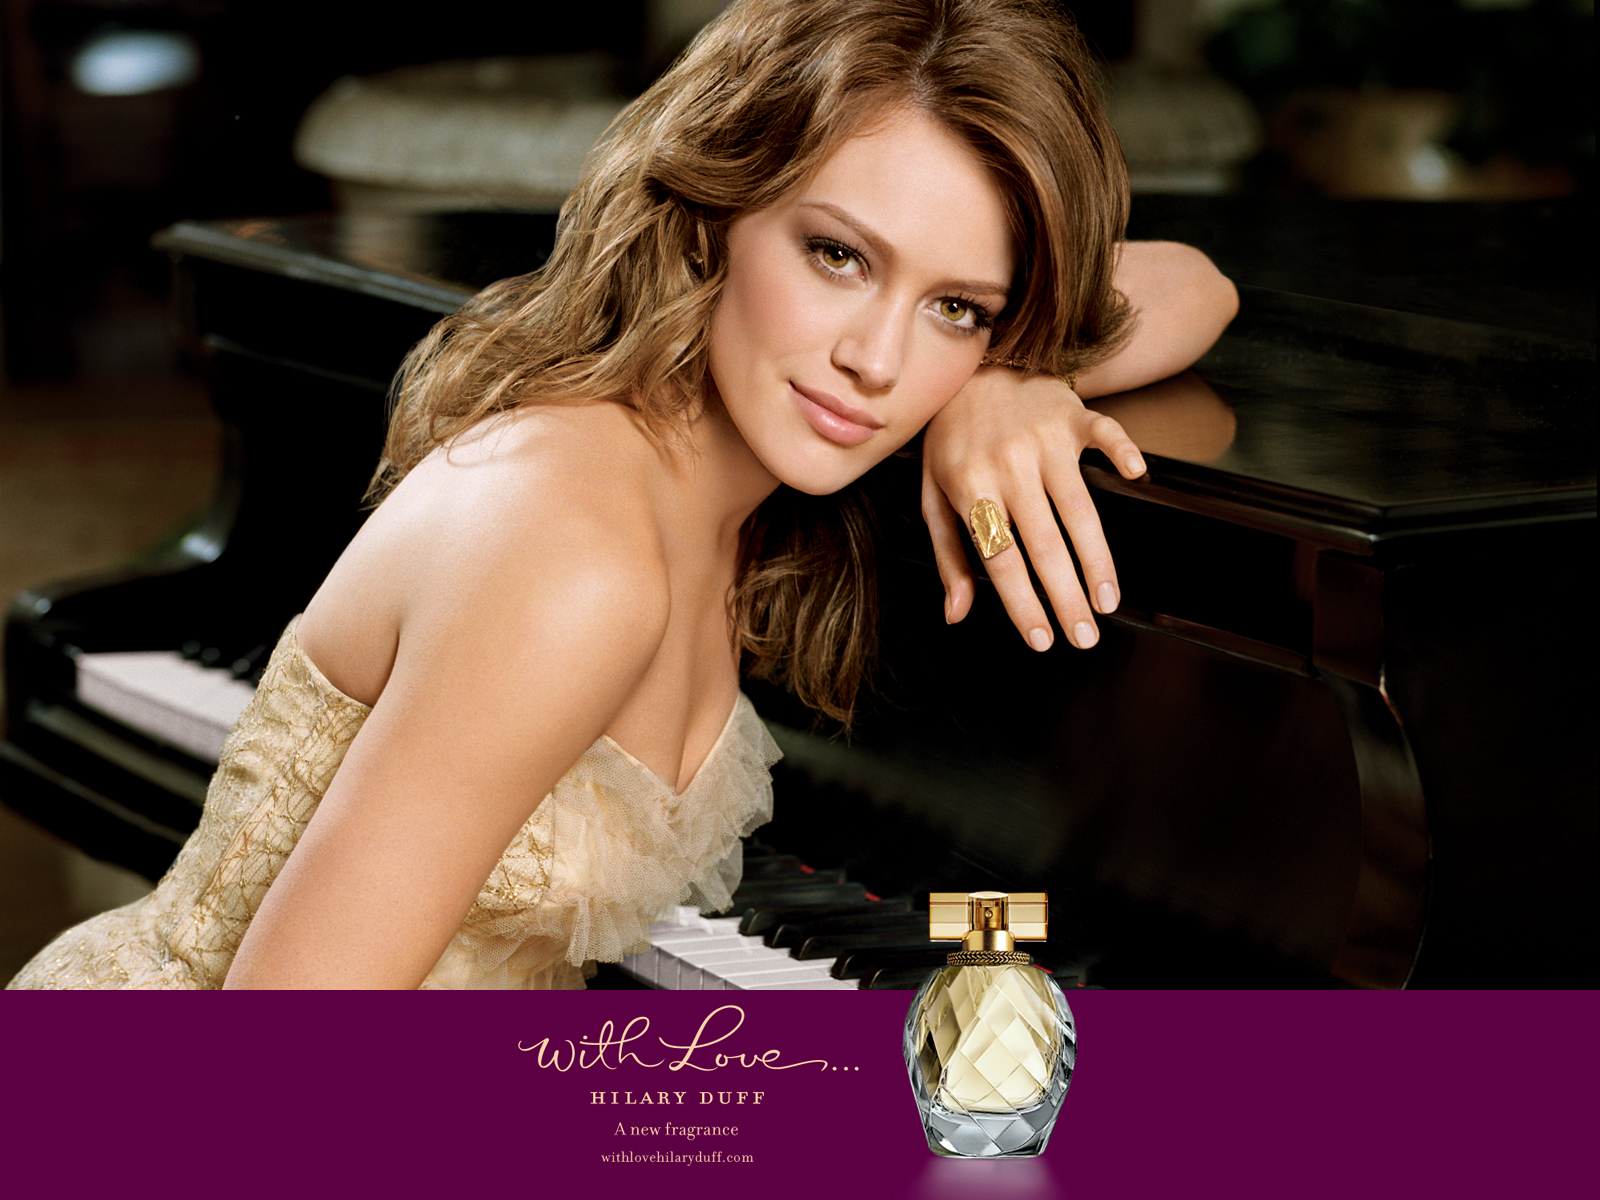 http://2.bp.blogspot.com/-VHXYsJ1uWew/UER2z7_qVsI/AAAAAAAAAOM/7qNJze69cpk/s1600/Hilary+Duff+Fragrance+%E2%80%93+With+Love+Perfume+for+Women.jpeg